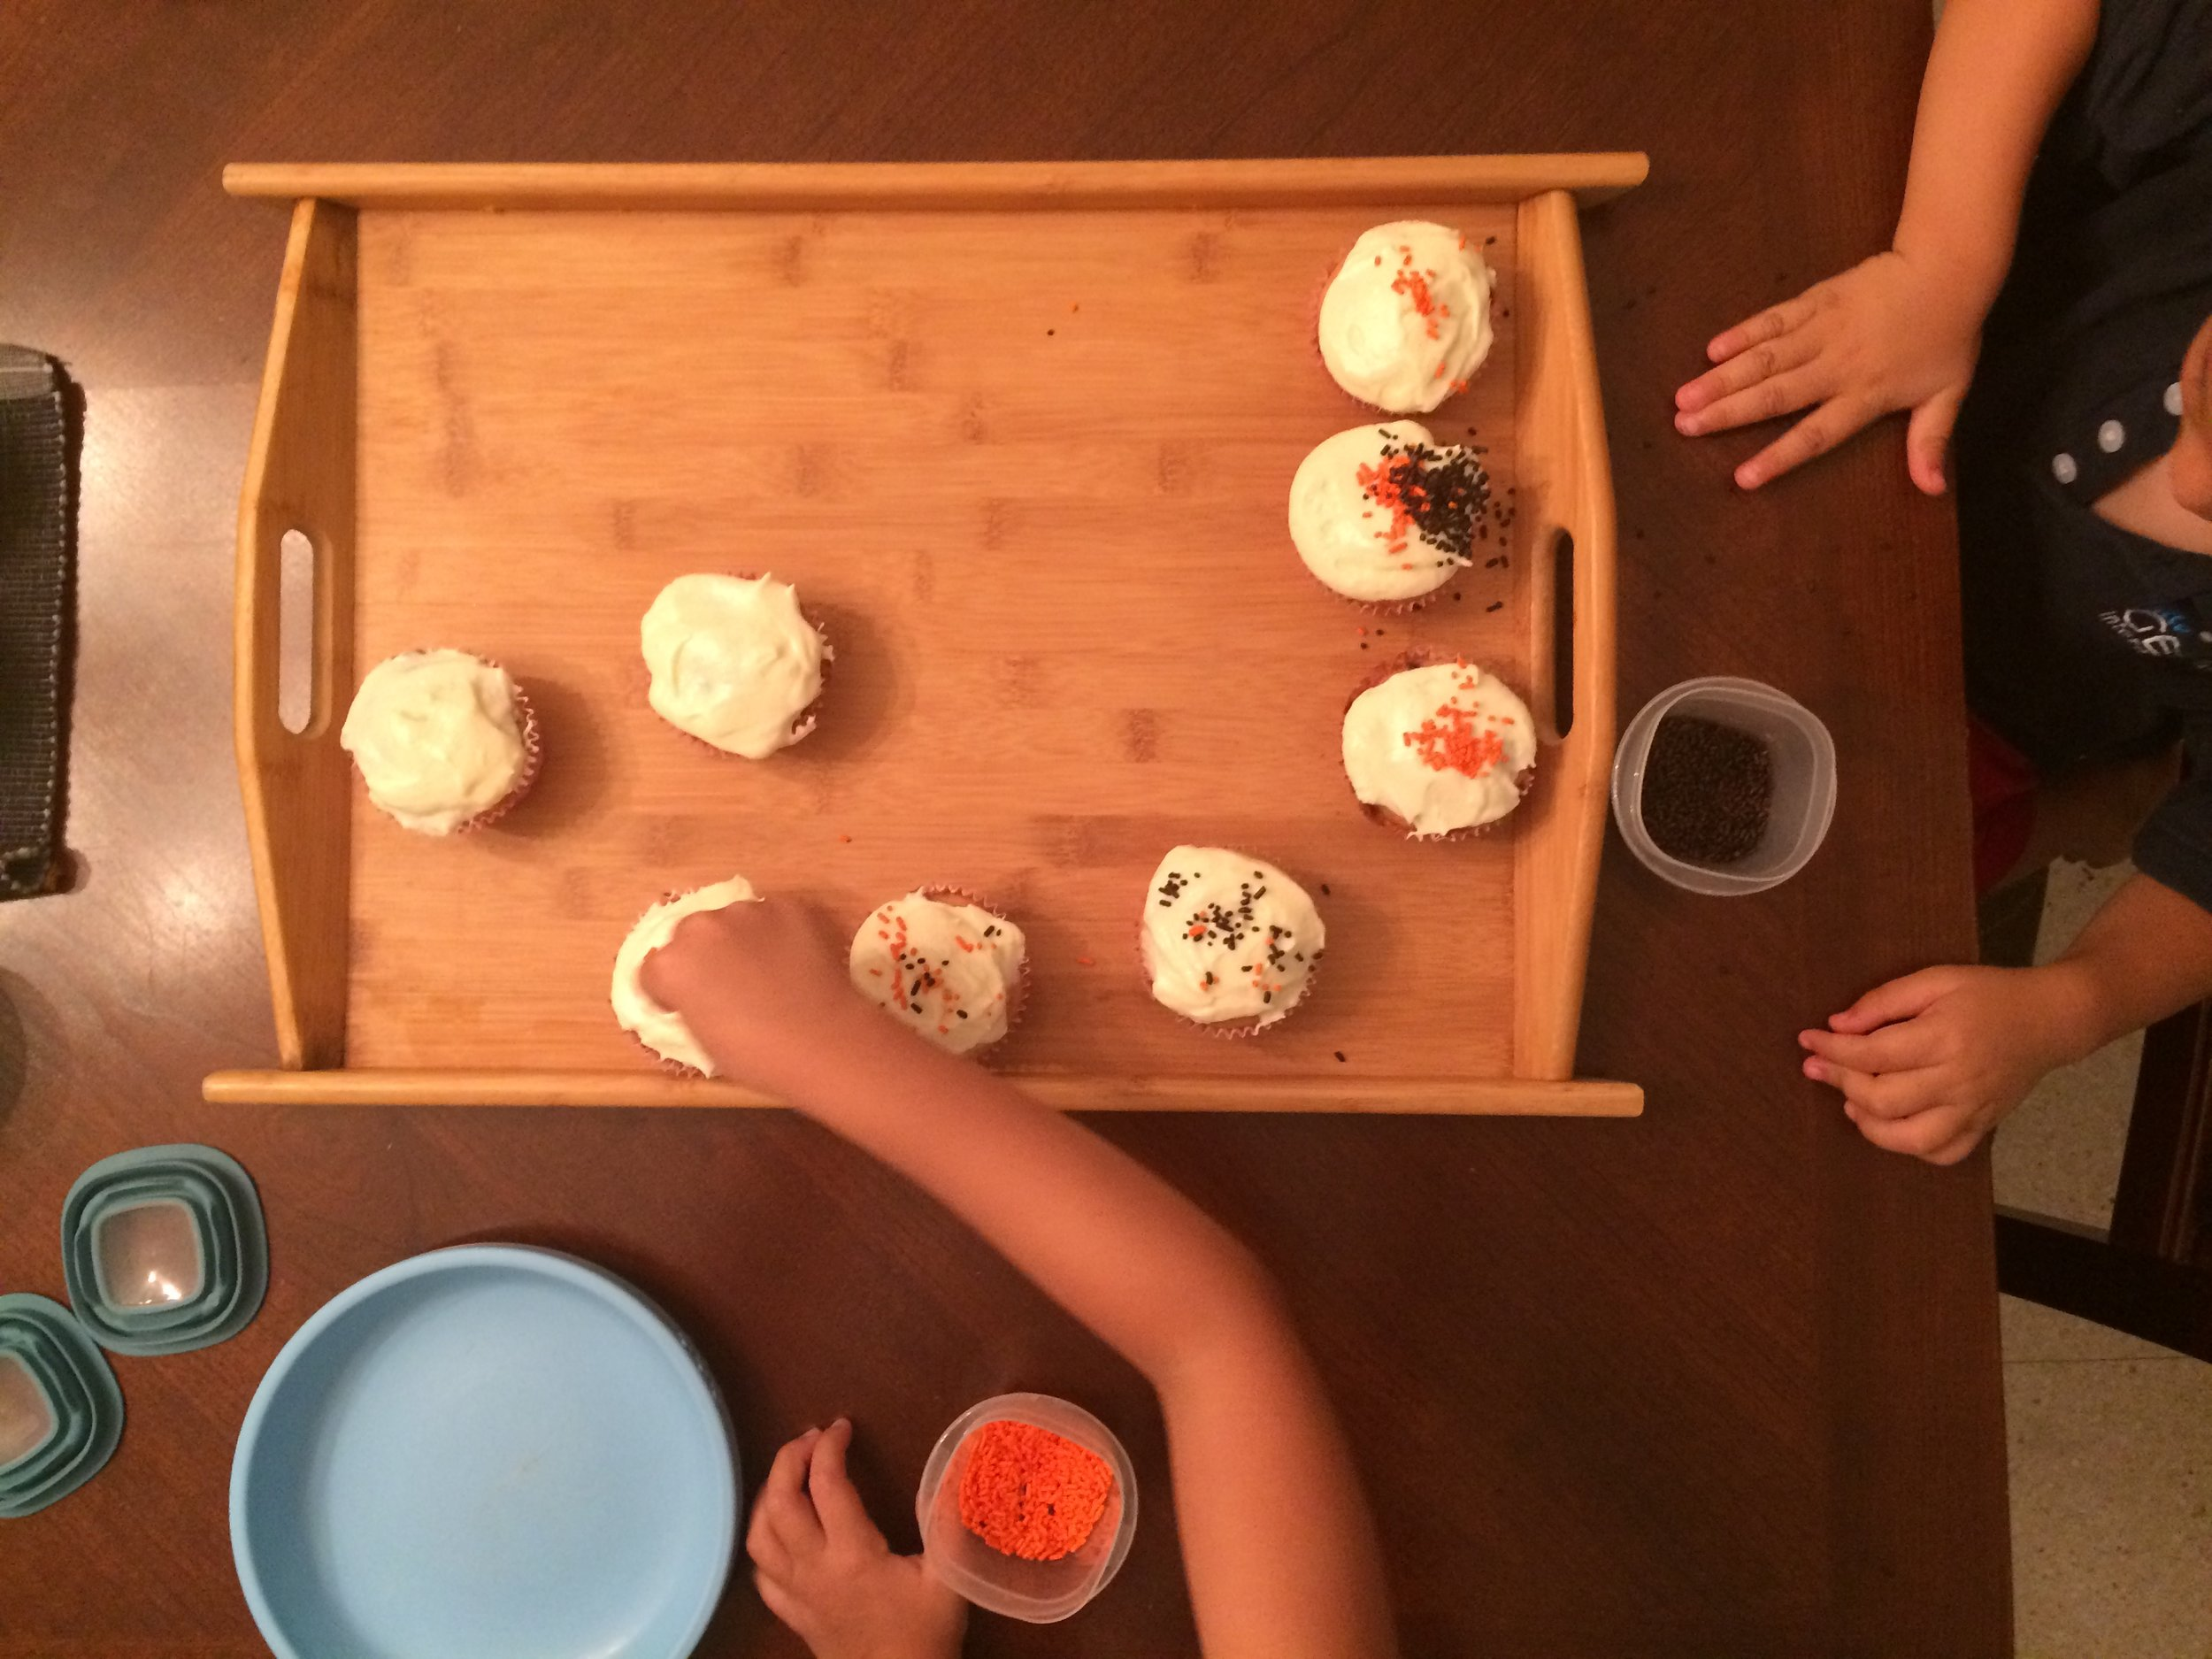 My kids decorating chocolate chip muffins with cream cheese frosting.